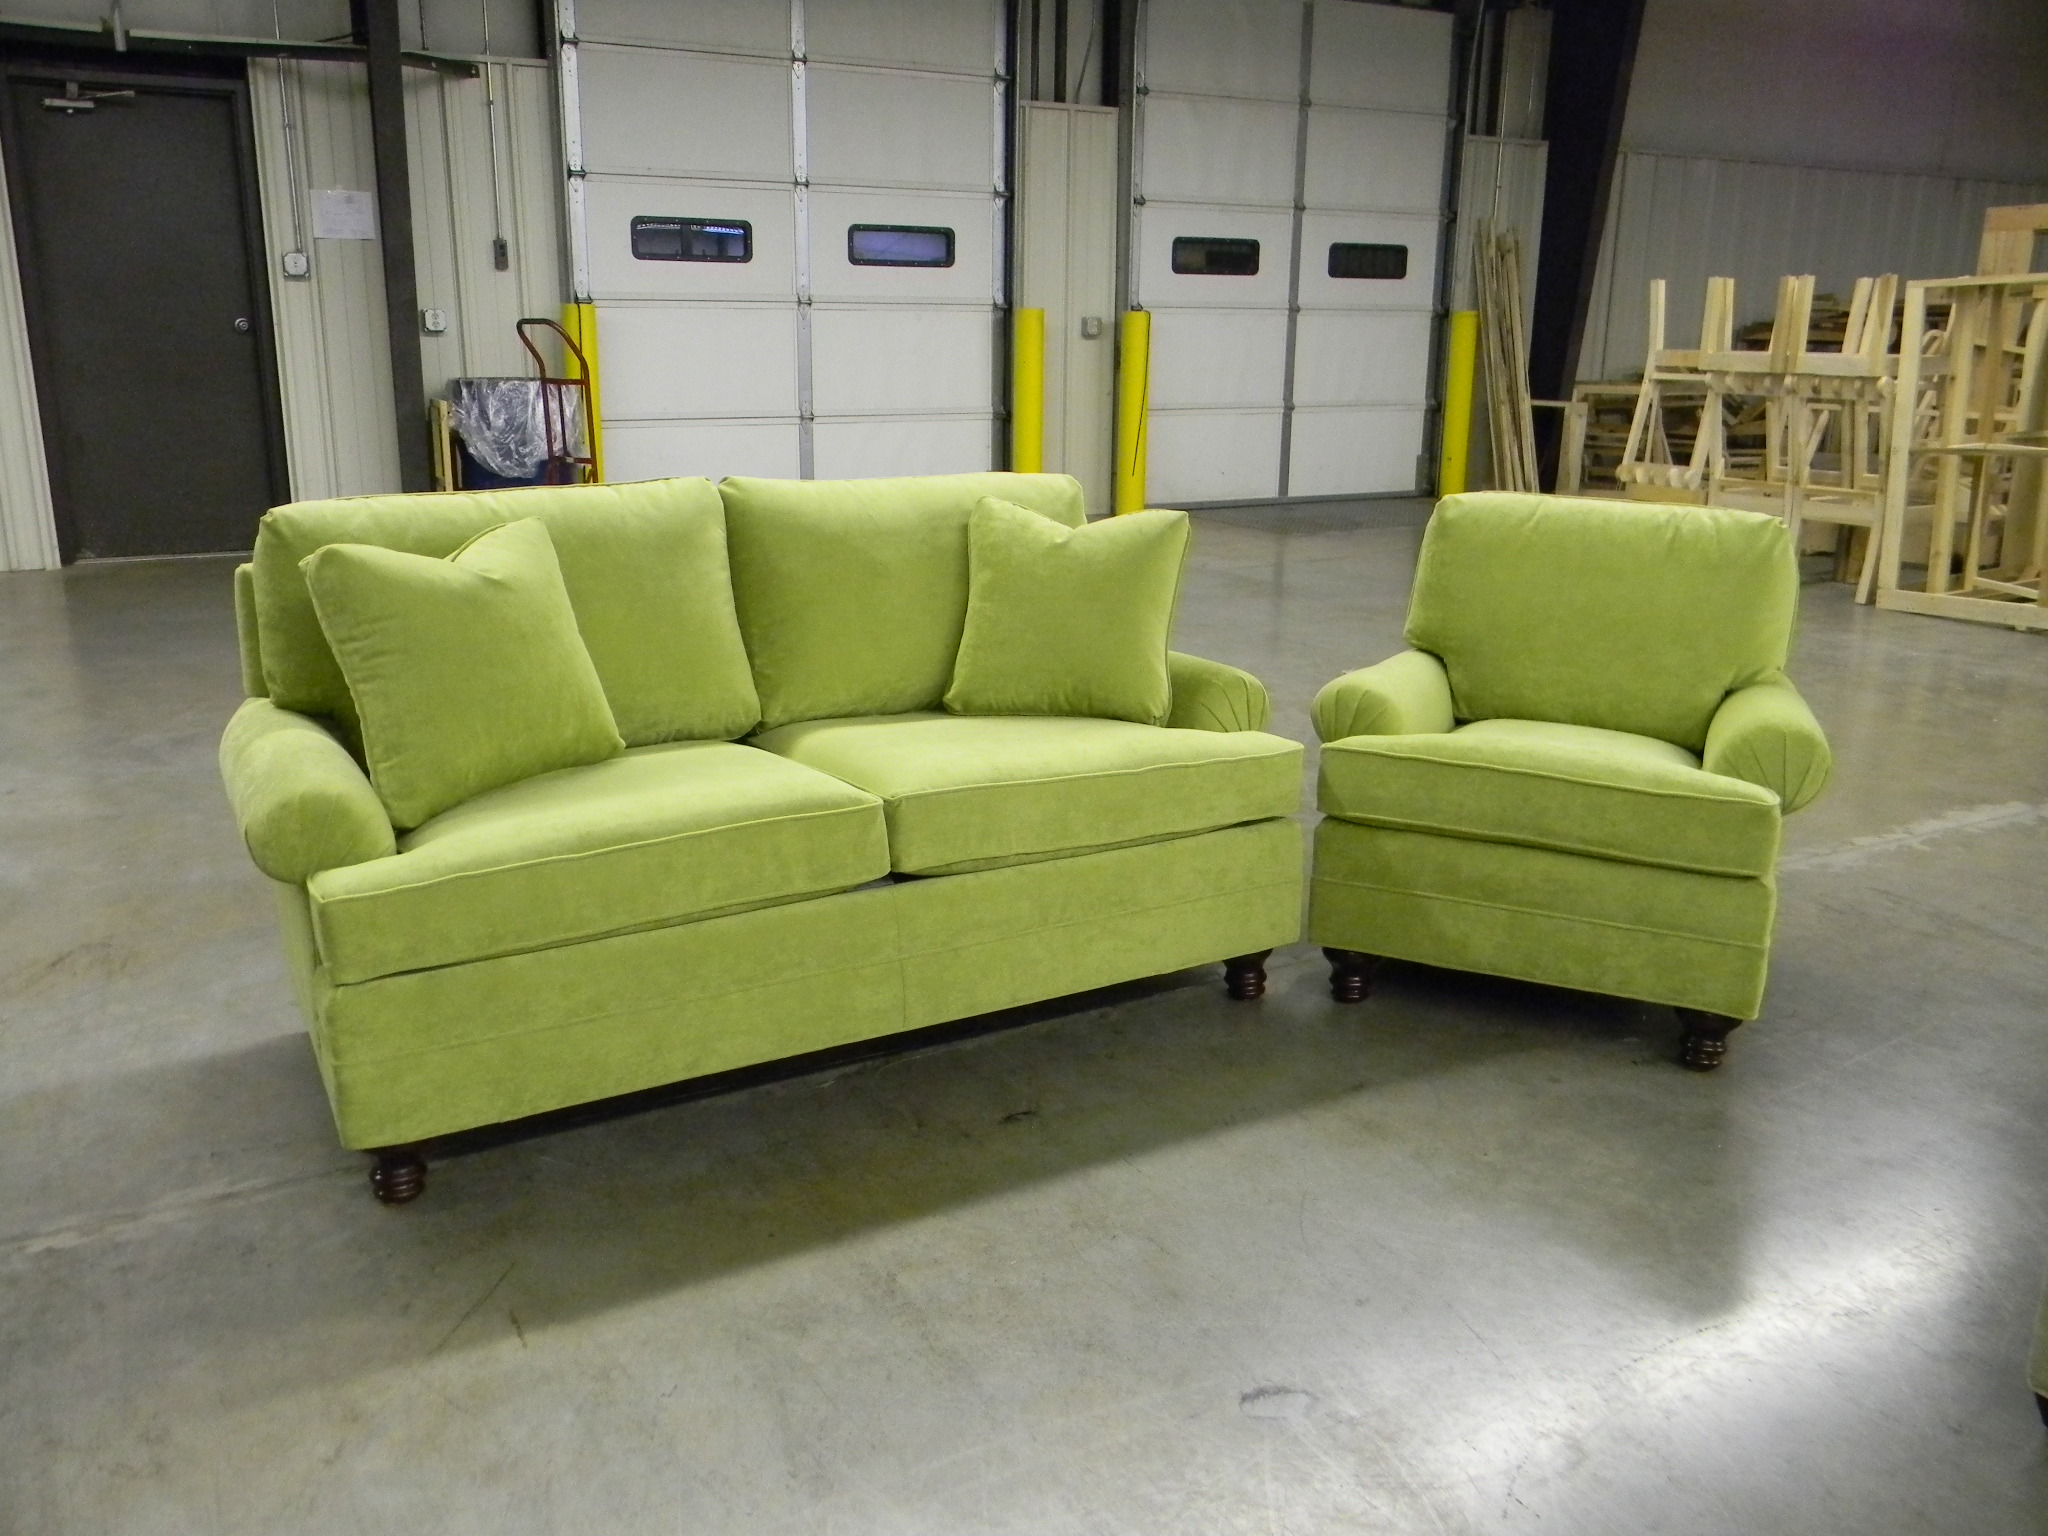 Apple green sofa jackson apartment size sofa green apple for Apple green living room ideas